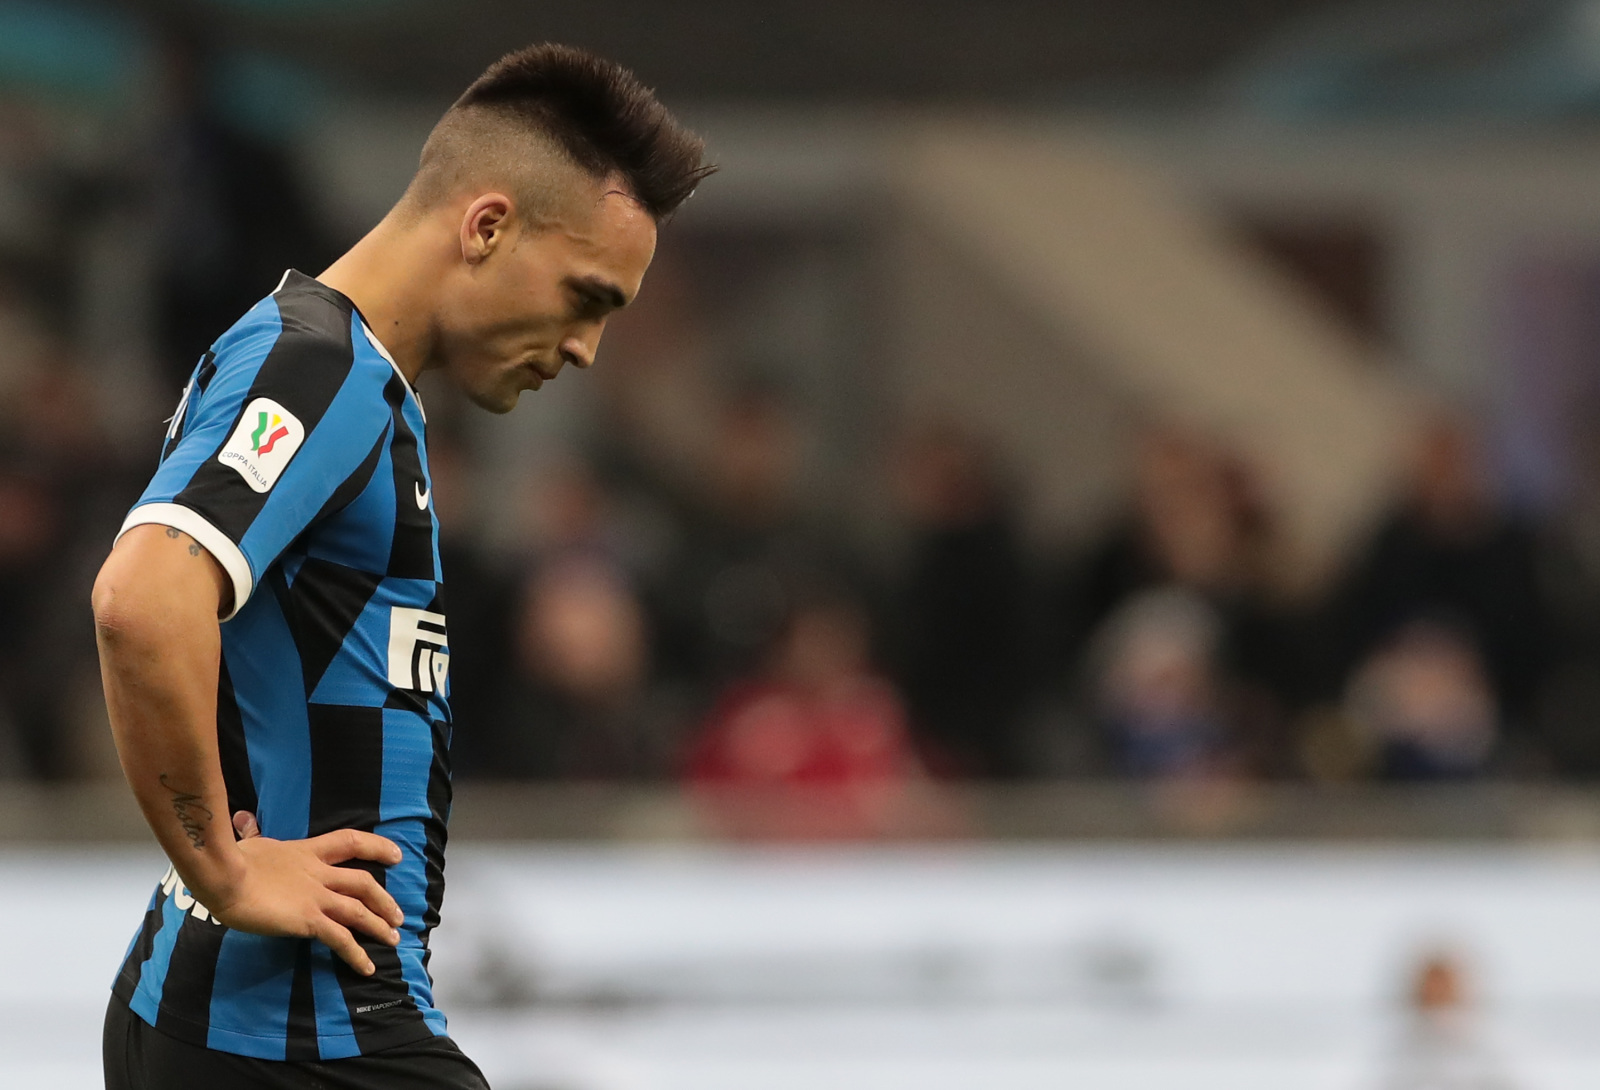 Lautaro Martinez turns down the Barcelona offer because of Bartomeu - Everything Barca